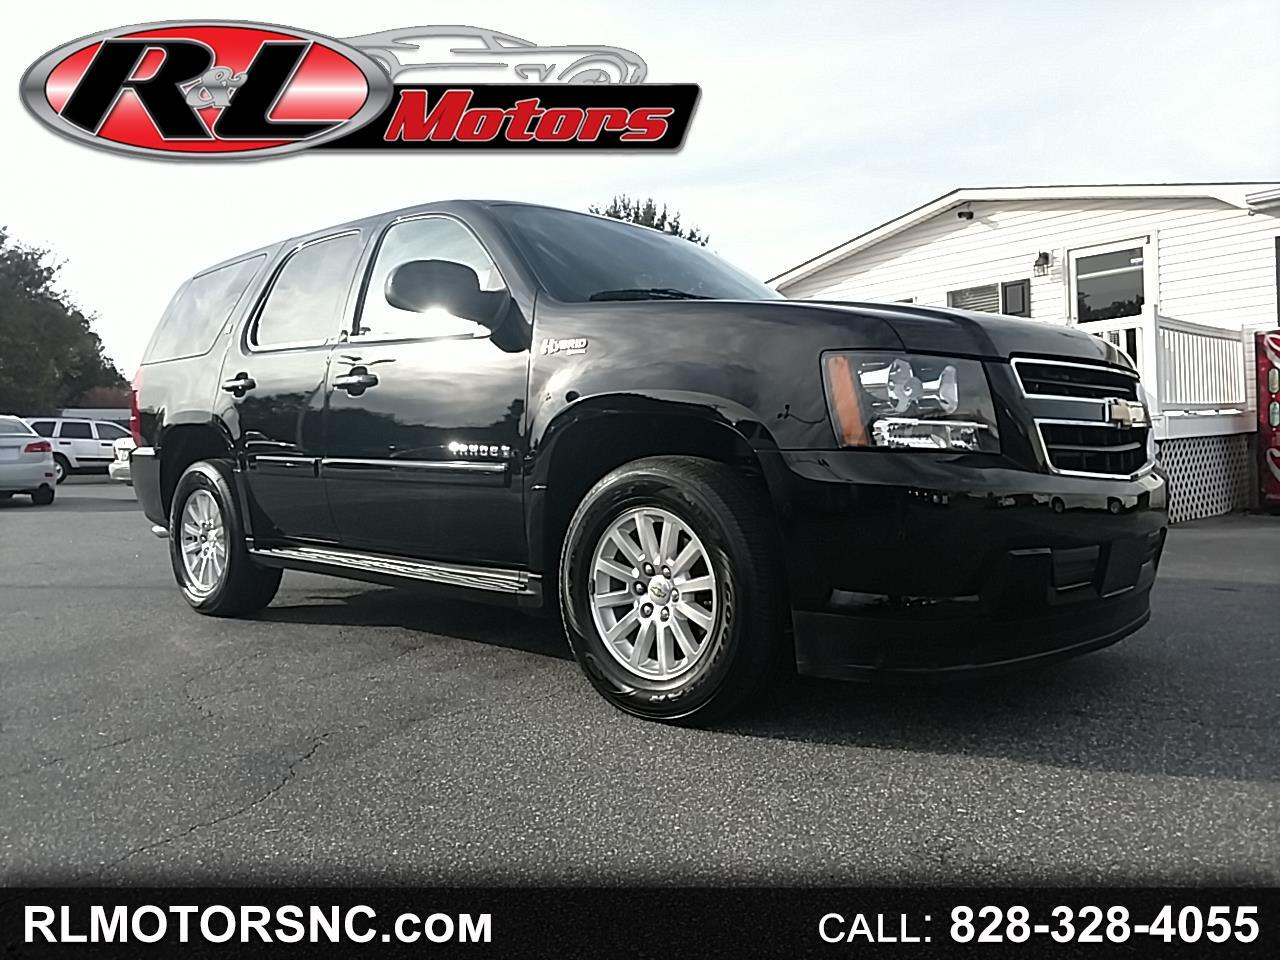 Buy Here Pay Here 2008 Chevrolet Tahoe Hybrid For Sale In Hickory